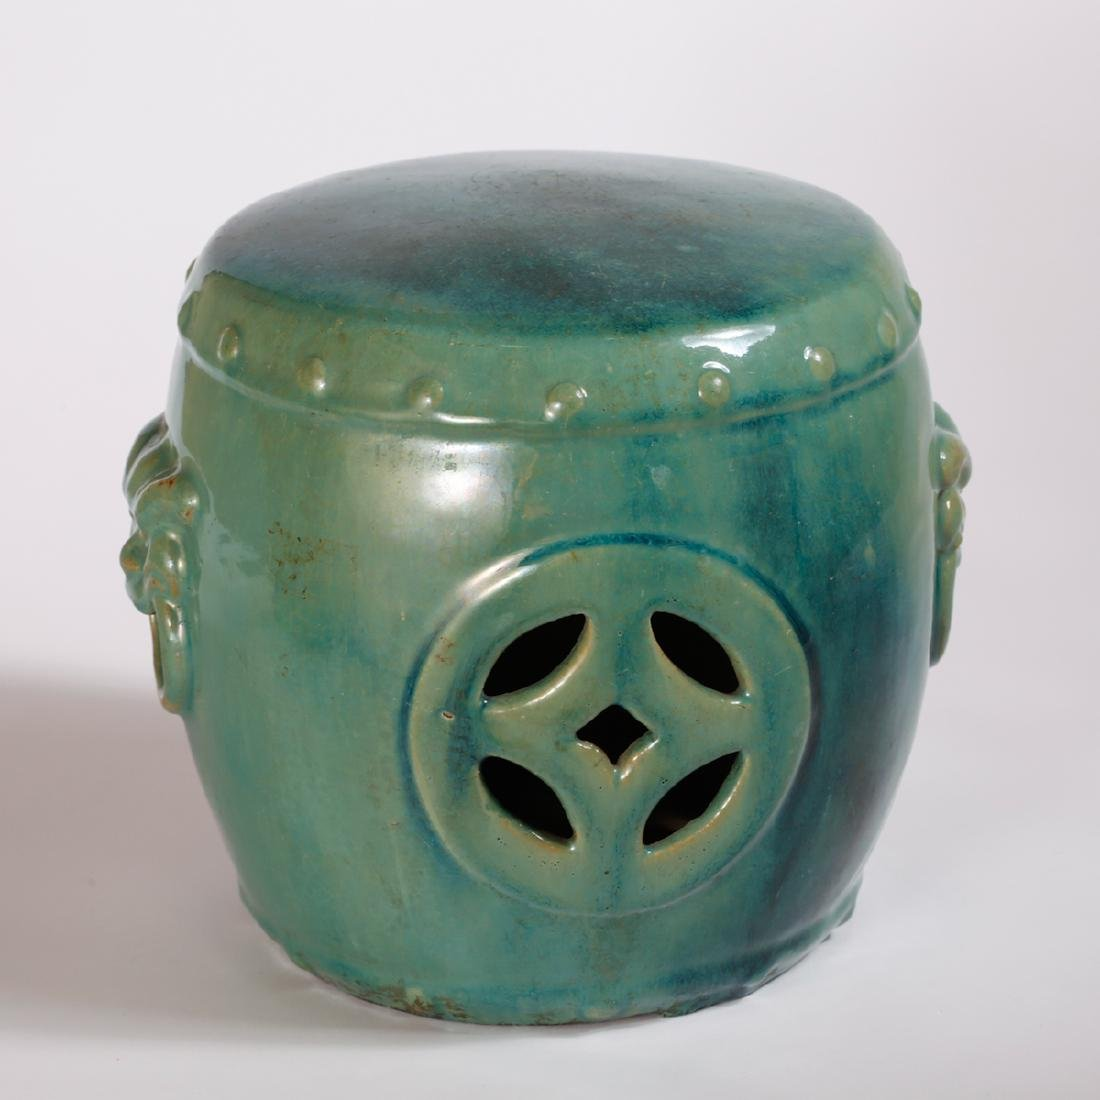 CHINESE TURQUOISE GLAZED PORCELAIN STOOL